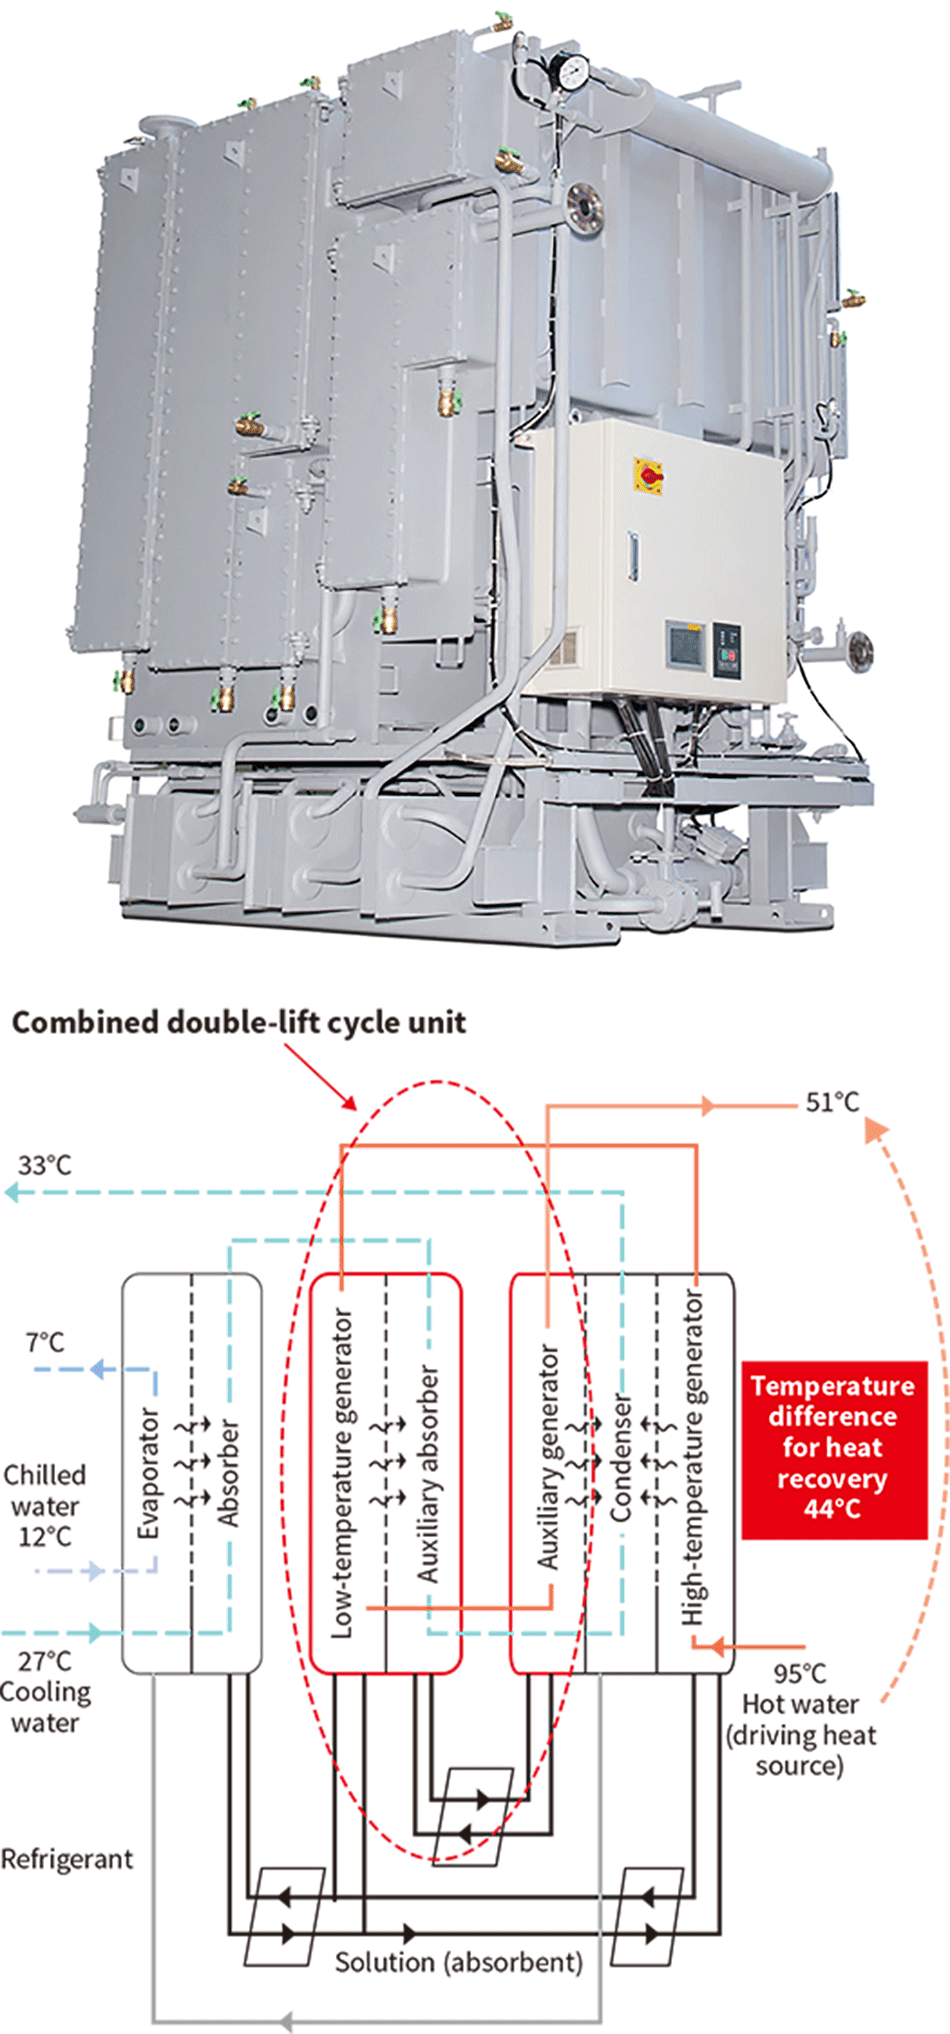 medium resolution of  single effect double lift absorption chiller top and cycle diagram bottom